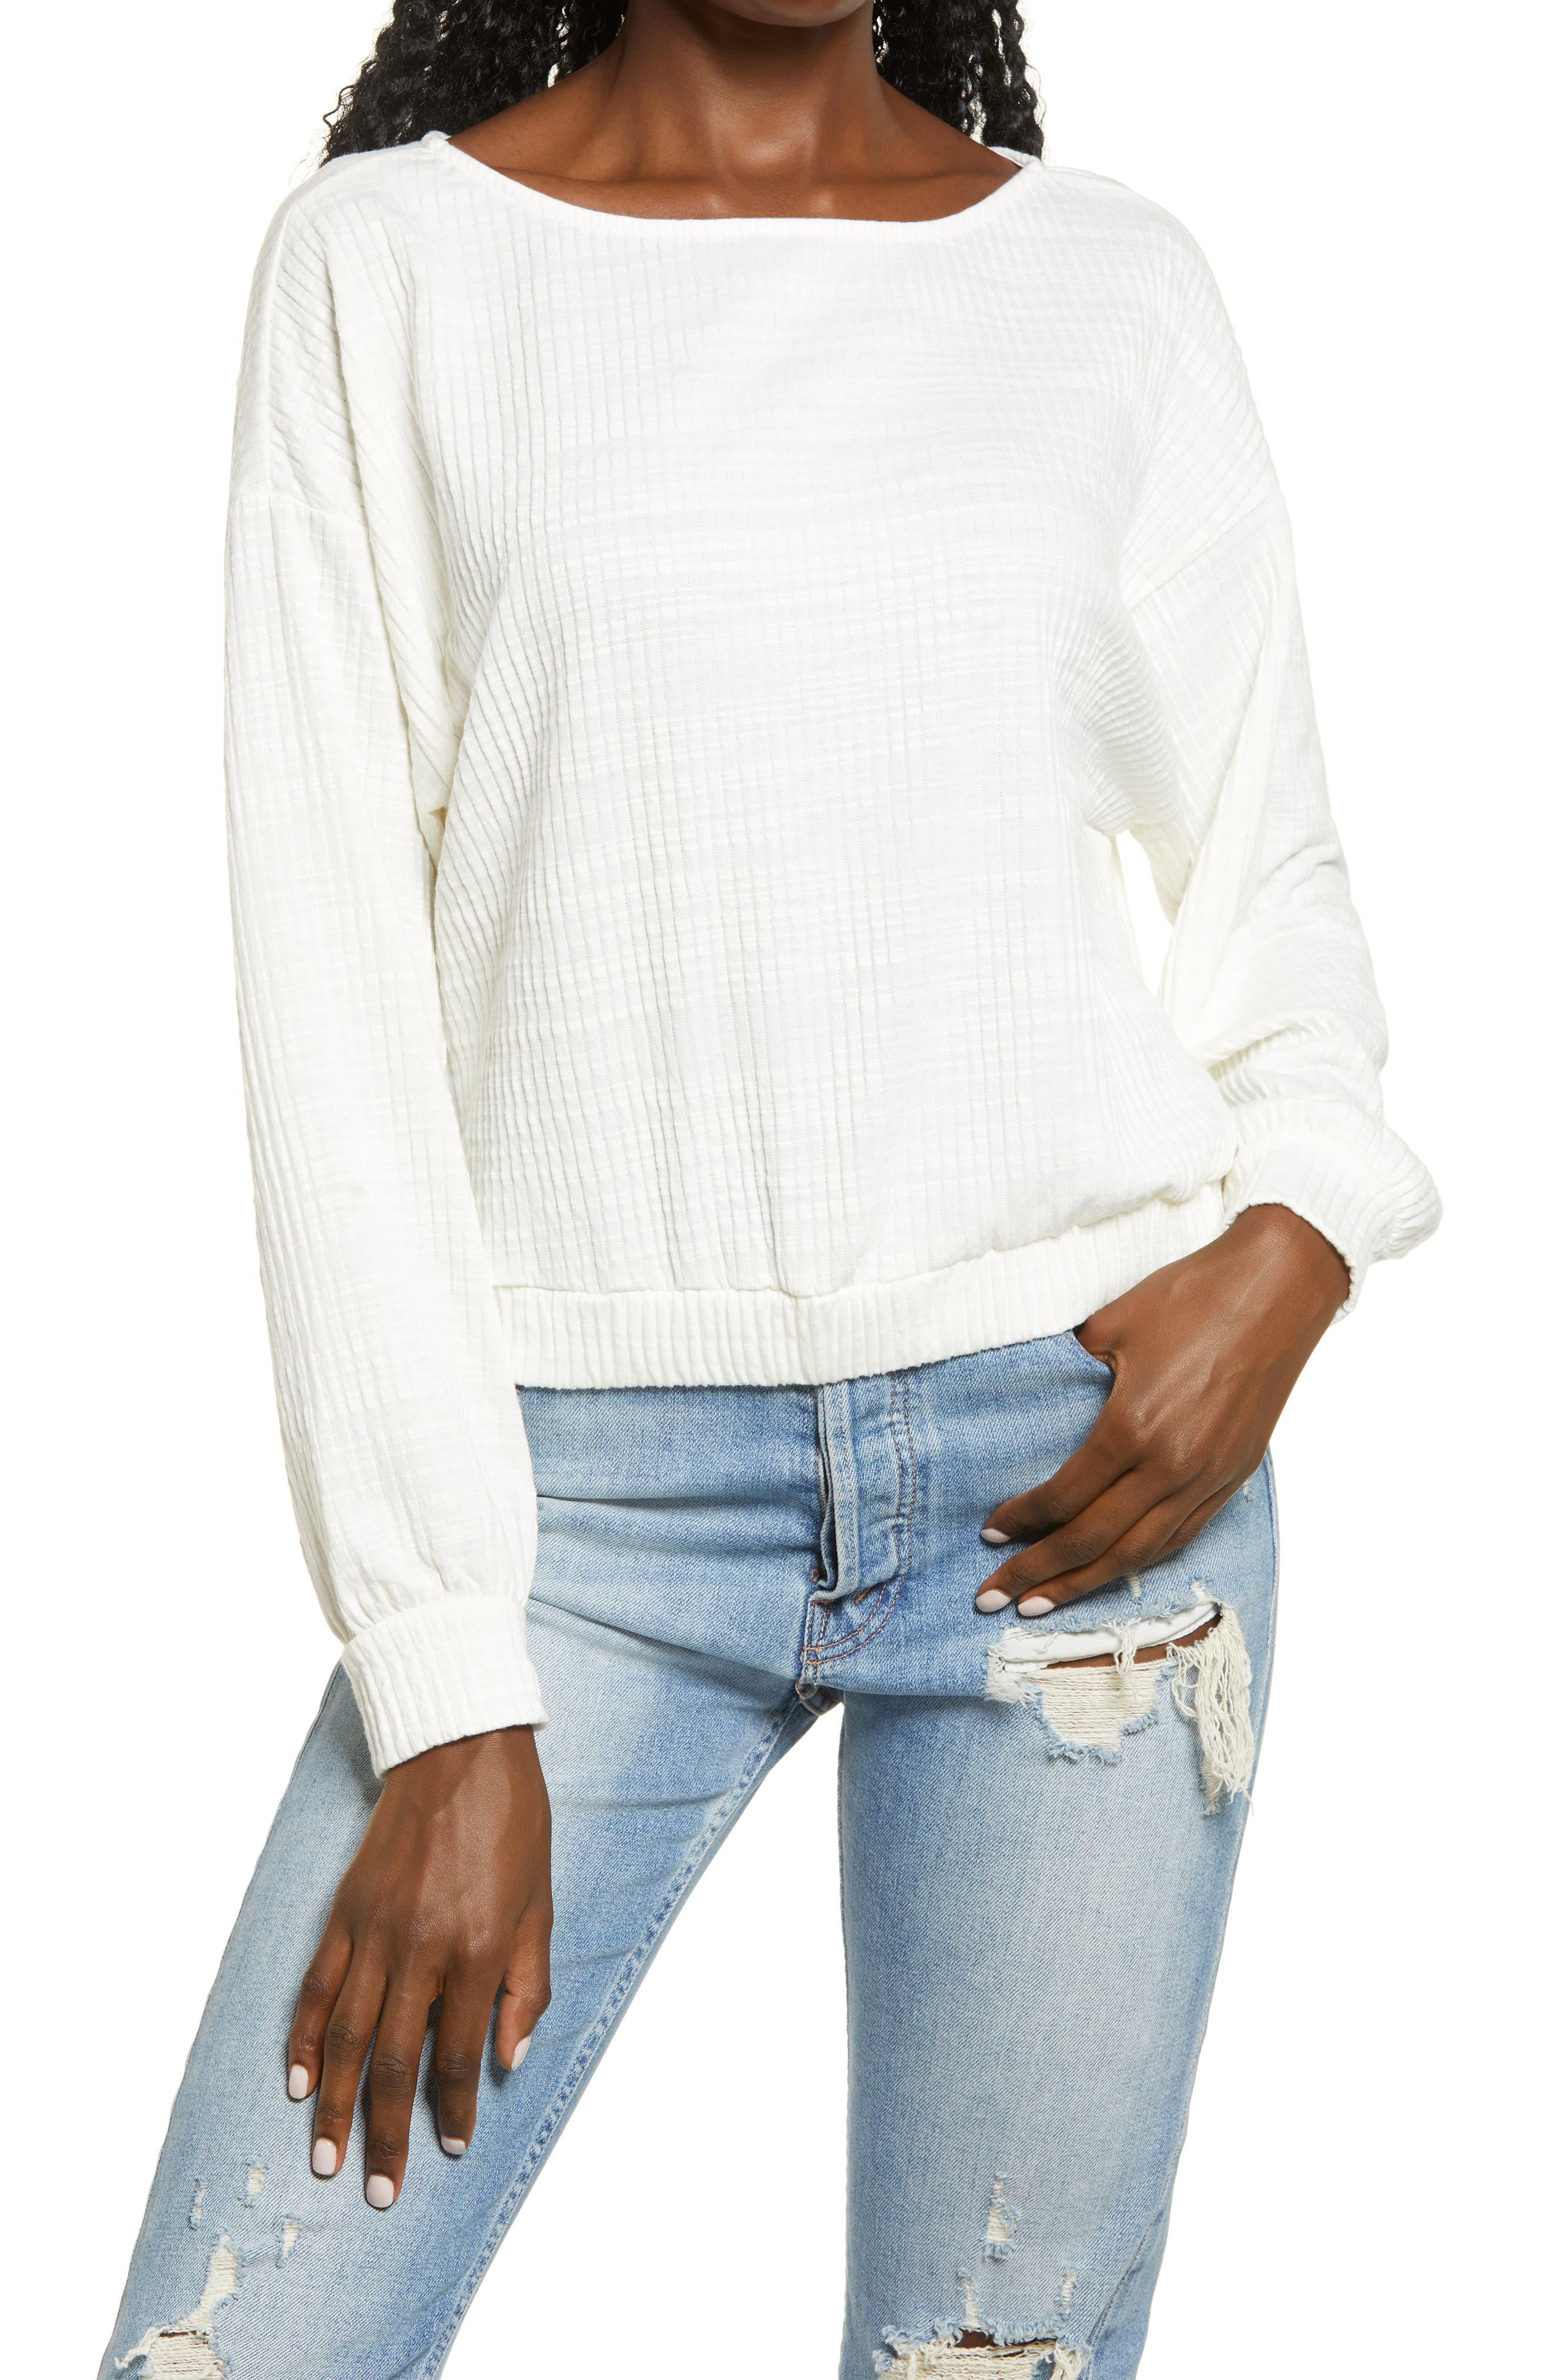 Soft ribs and a casual dropped-shoulder give this top a relaxed look you can pair with anything. Style Name: All In Favor Boat Neck Pullover. Style Number: 6158051. Available in stores.